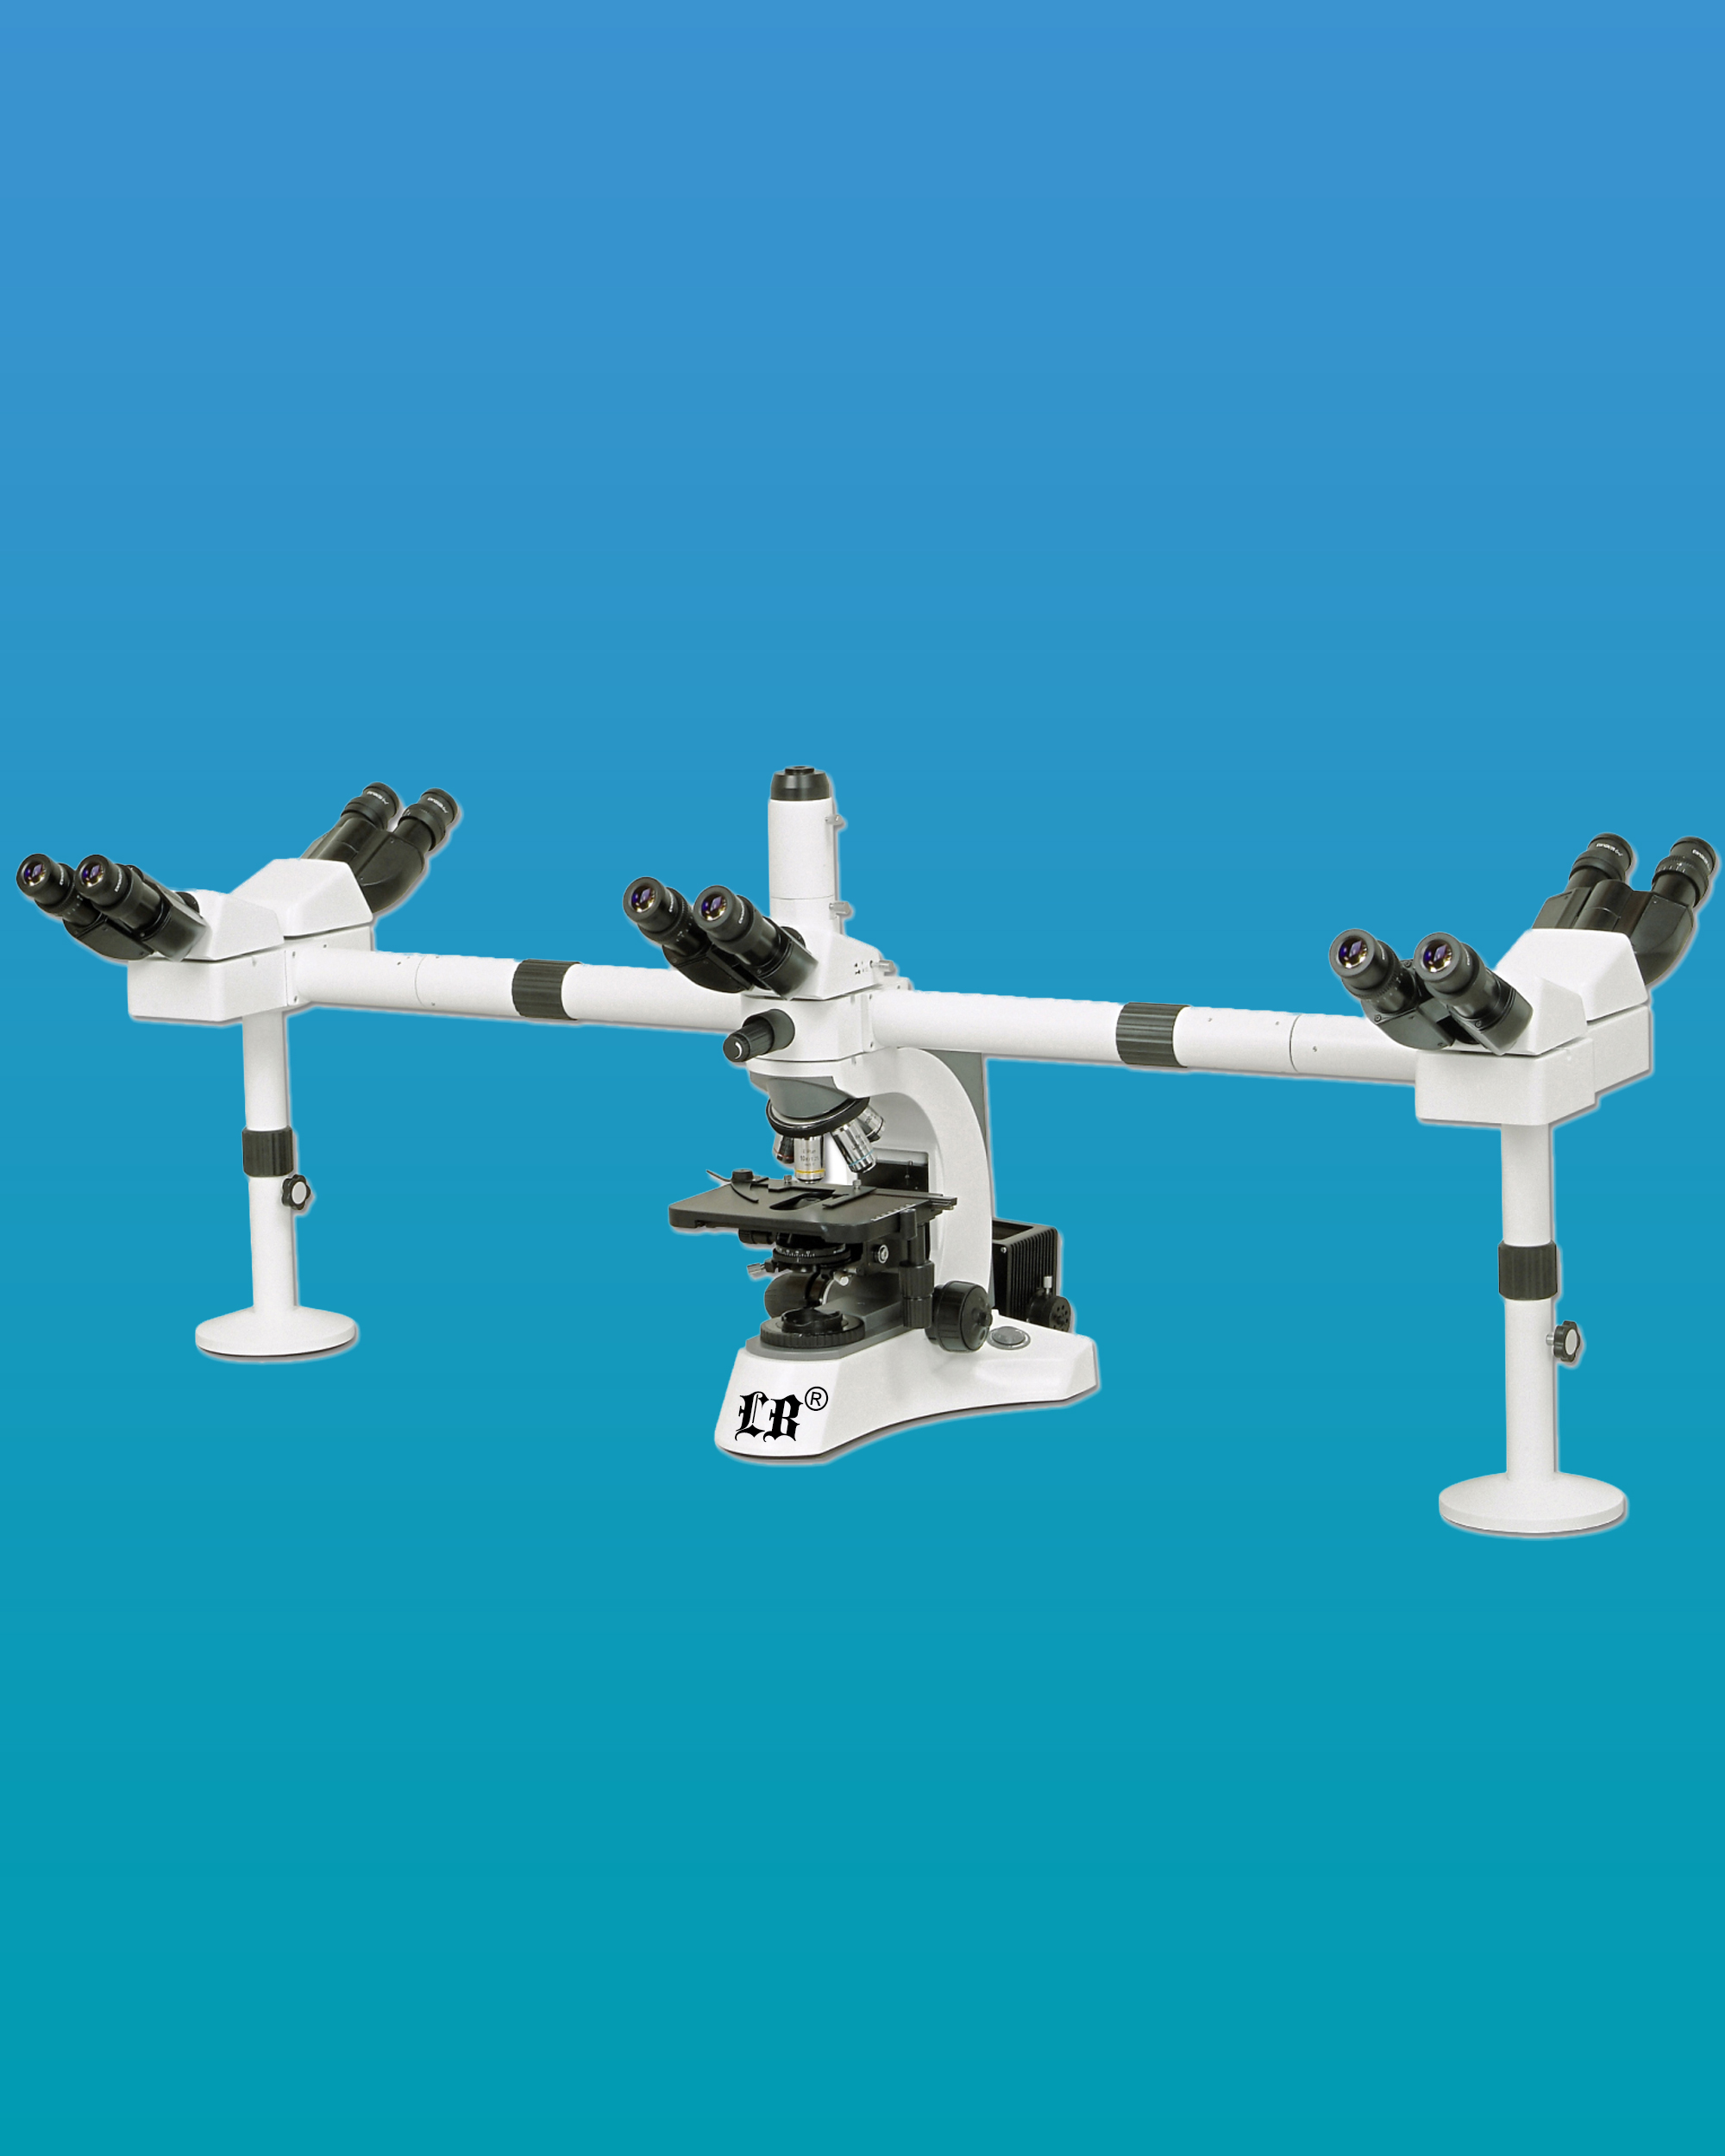 [LB-984] Multi-Head Microscope for 6 Simultaneous Users, 5 Users w/ a Binocular Head & Trinocular Head